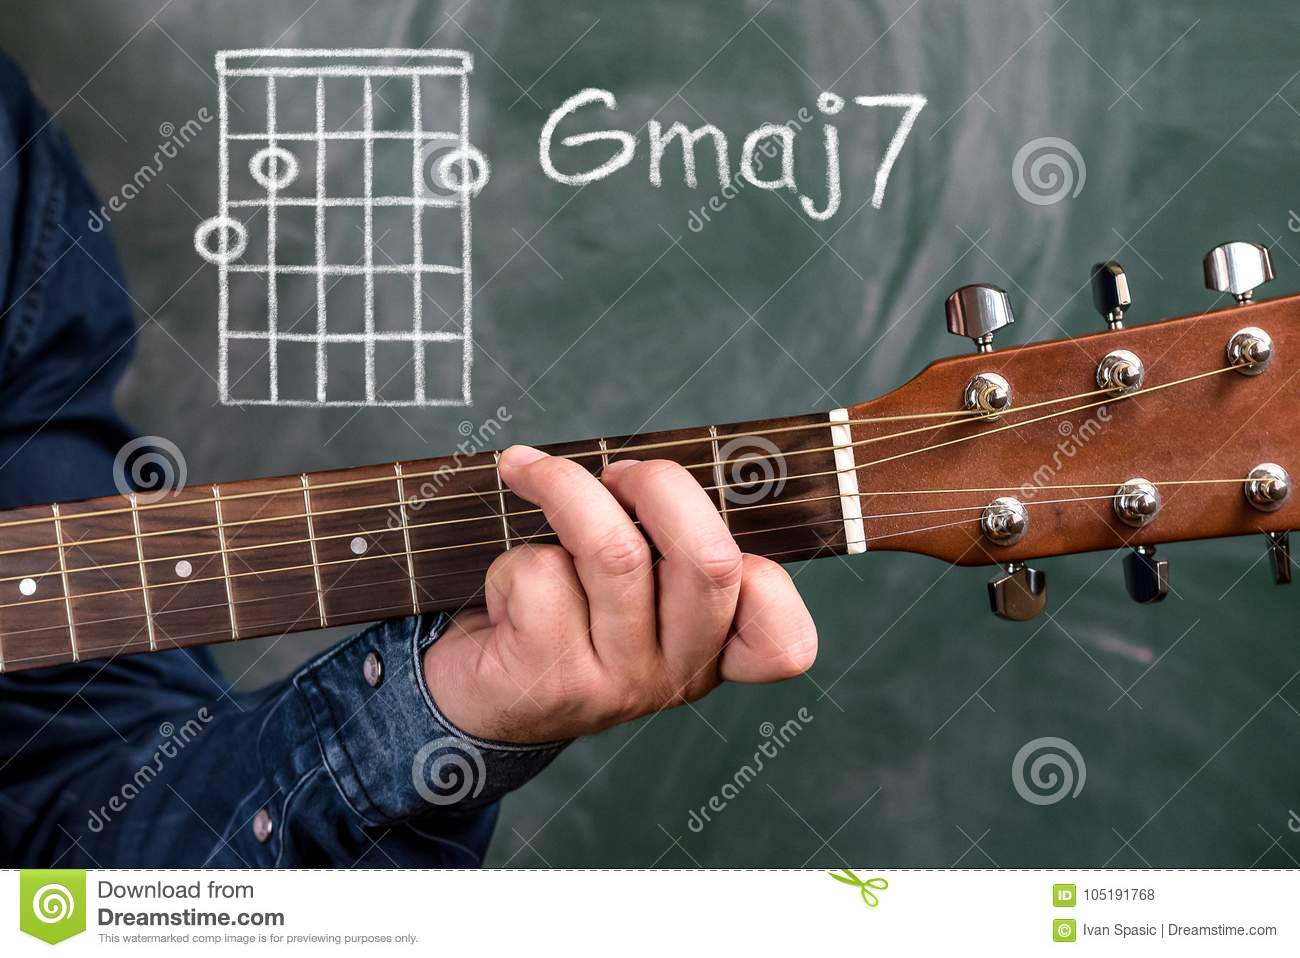 Man Playing Guitar Chords Displayed On A Blackboard Chord Gmaj7